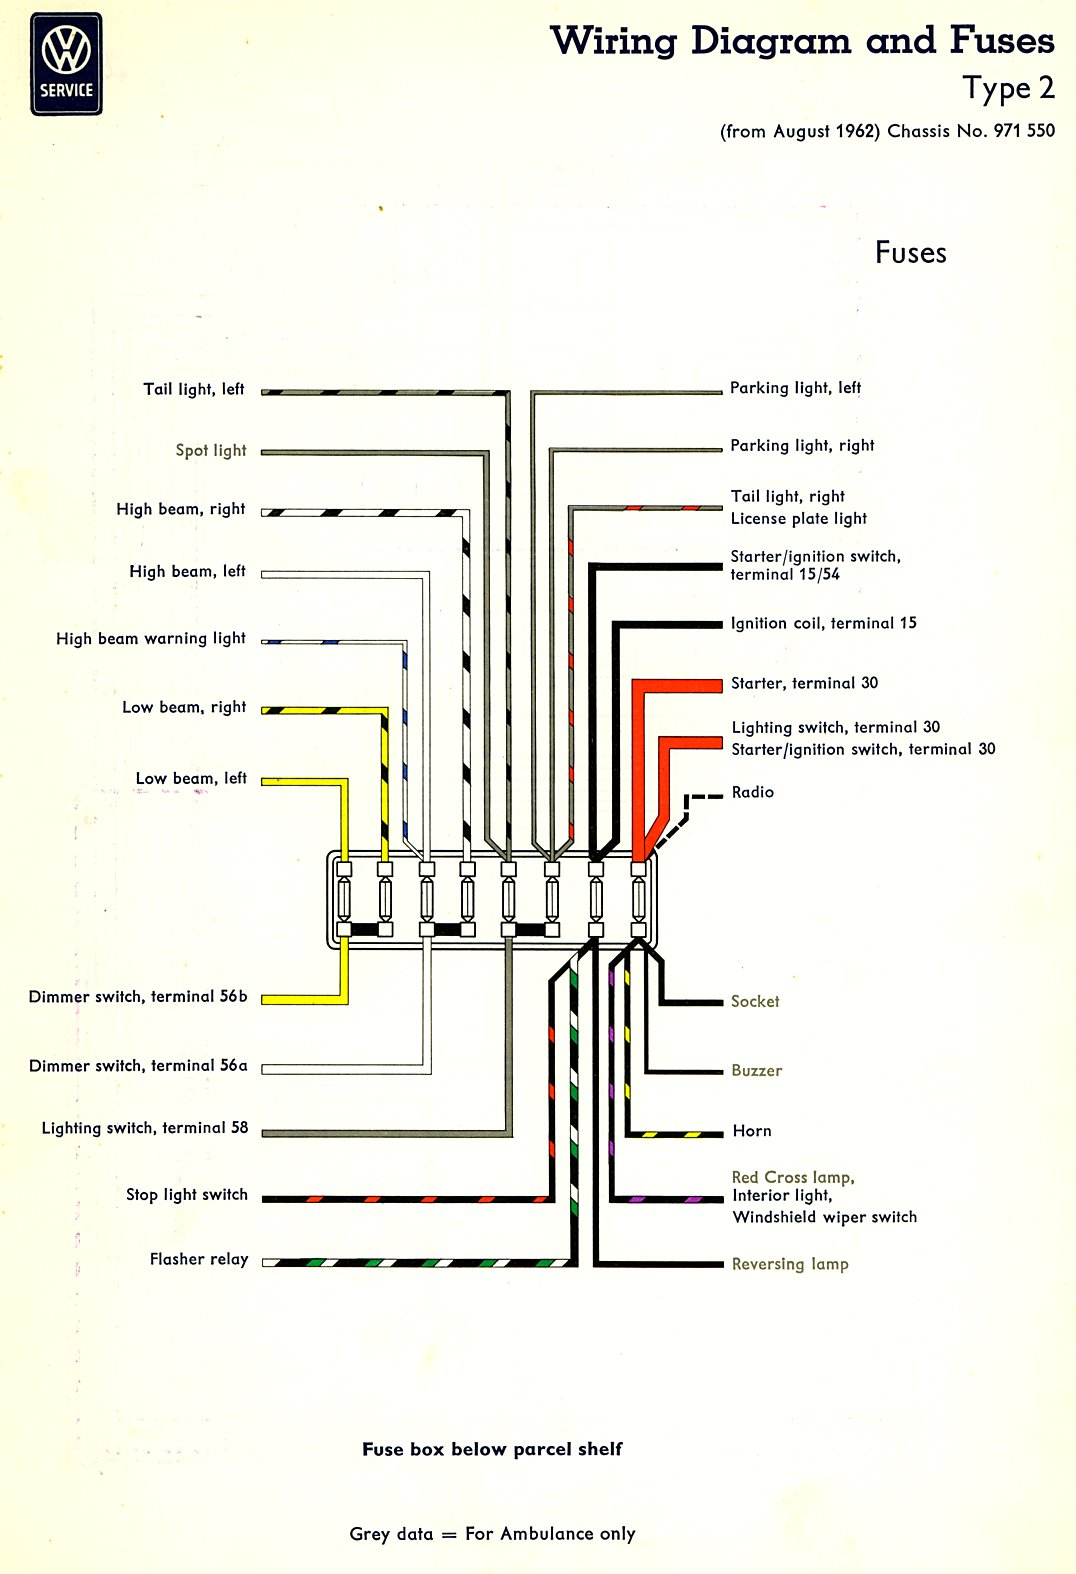 bus_63_fuses thesamba com type 2 wiring diagrams 1978 vw bus fuse box diagram at love-stories.co